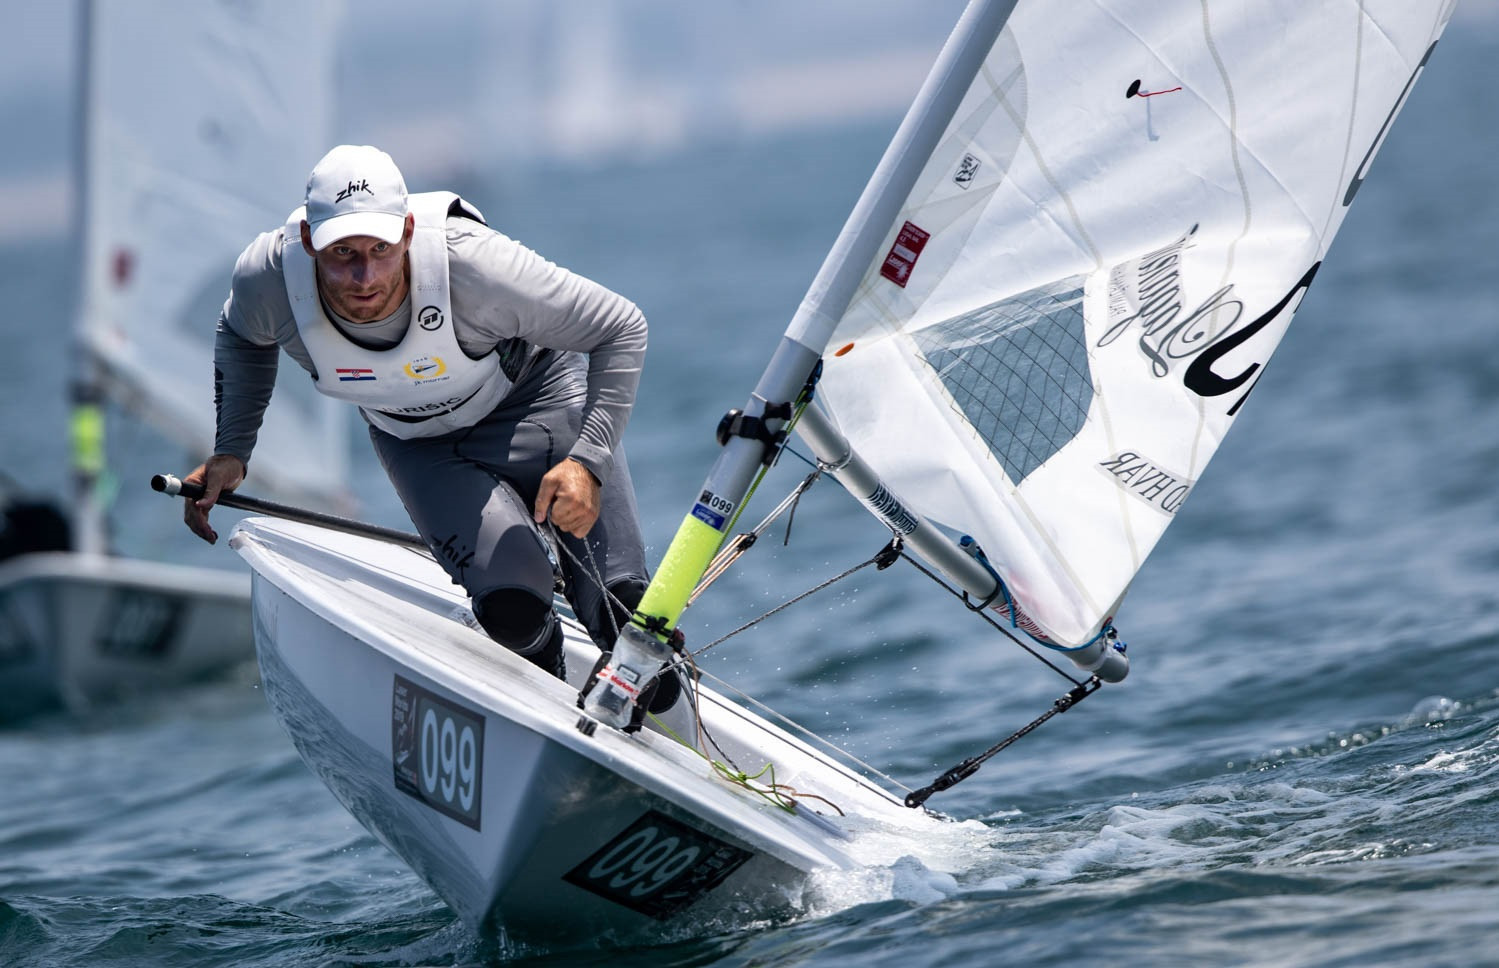 Croatia's Filip Jurišić, pictured, and New Zealand's George Gautrey share the lead after the opening day of the 2019 ILCA Laser Standard Men's World Championship in Japanese city Sakaiminato ©Junichi Hirai/Bulkhead Magazine Japan